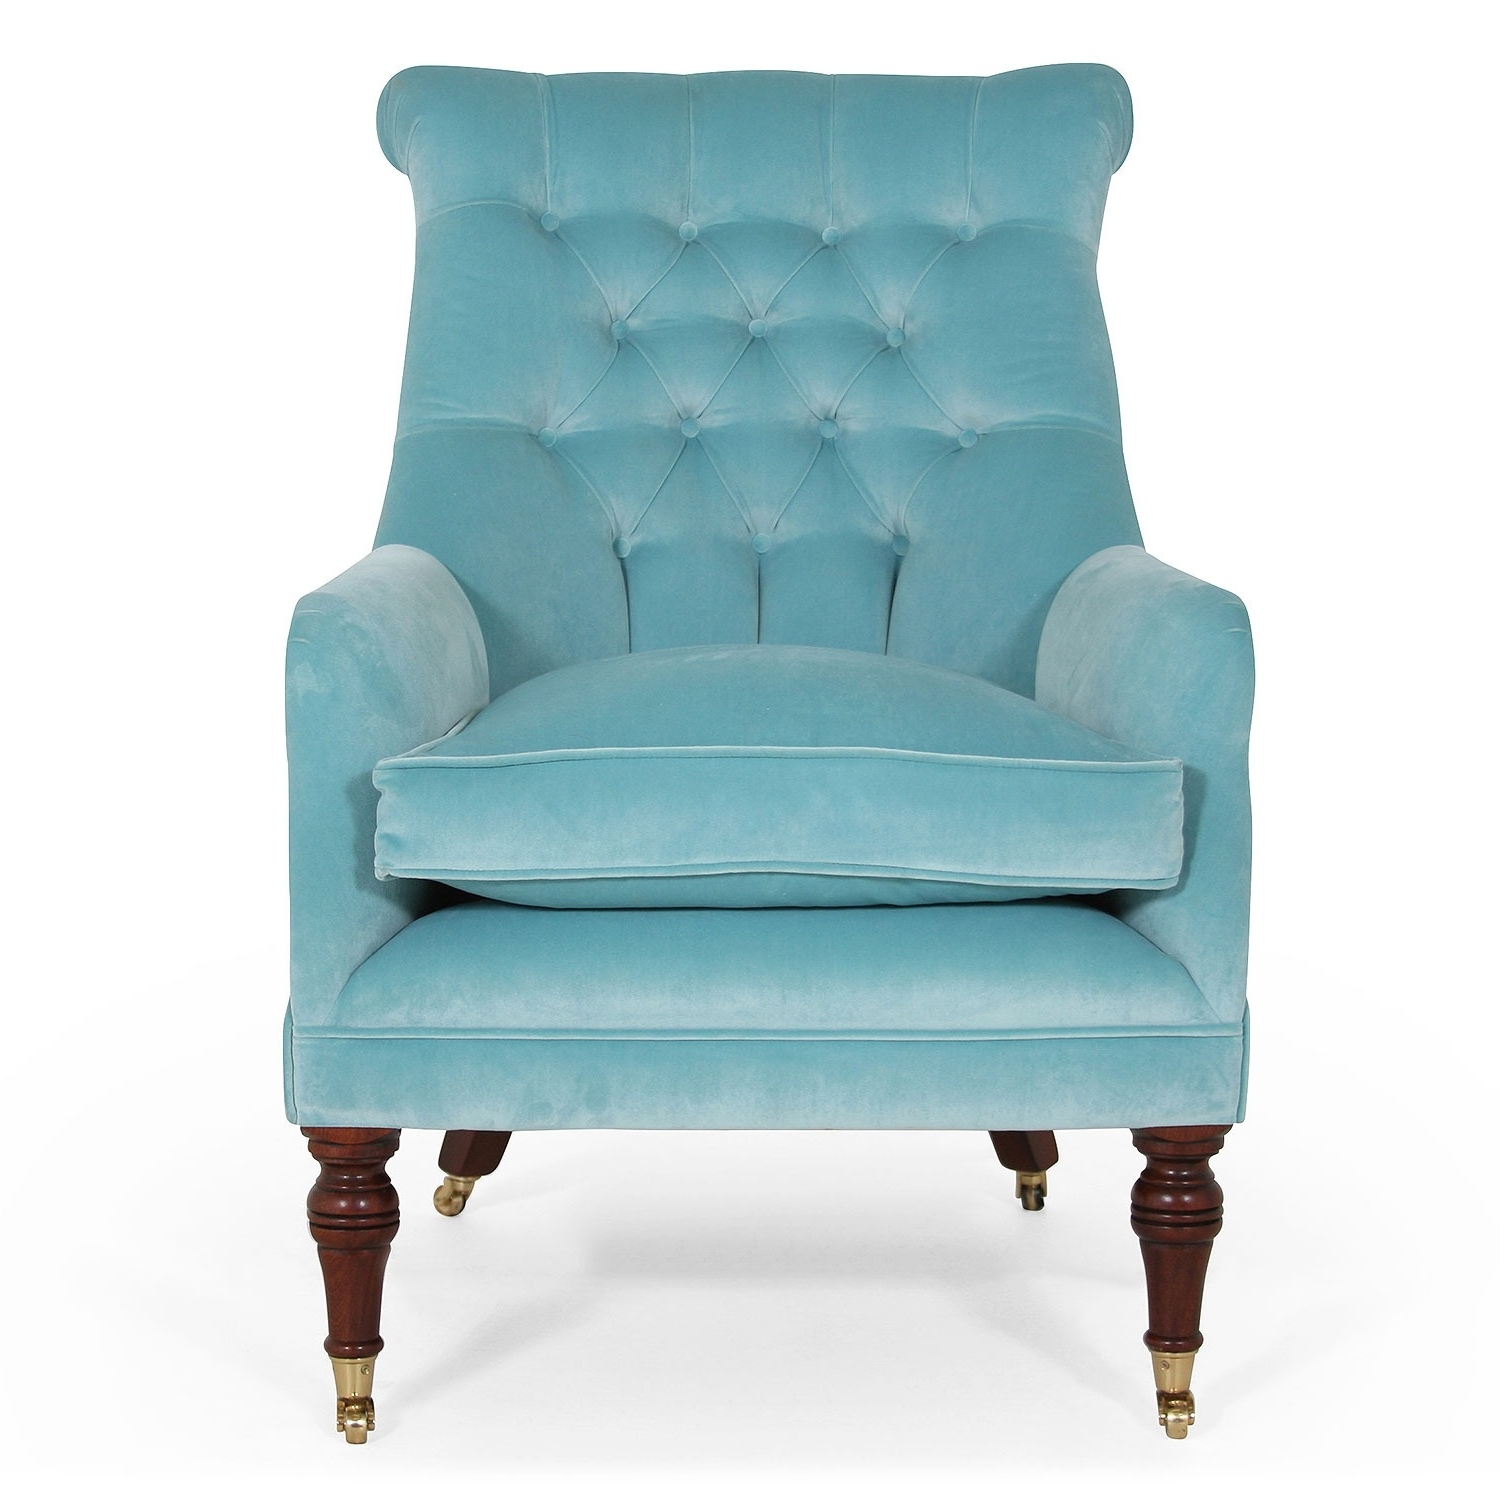 Well Liked Swift Bedroom Chair In Linwood Omega Fjord, Fabric Chairs In Stock Regarding Swift Side Chairs (View 17 of 20)